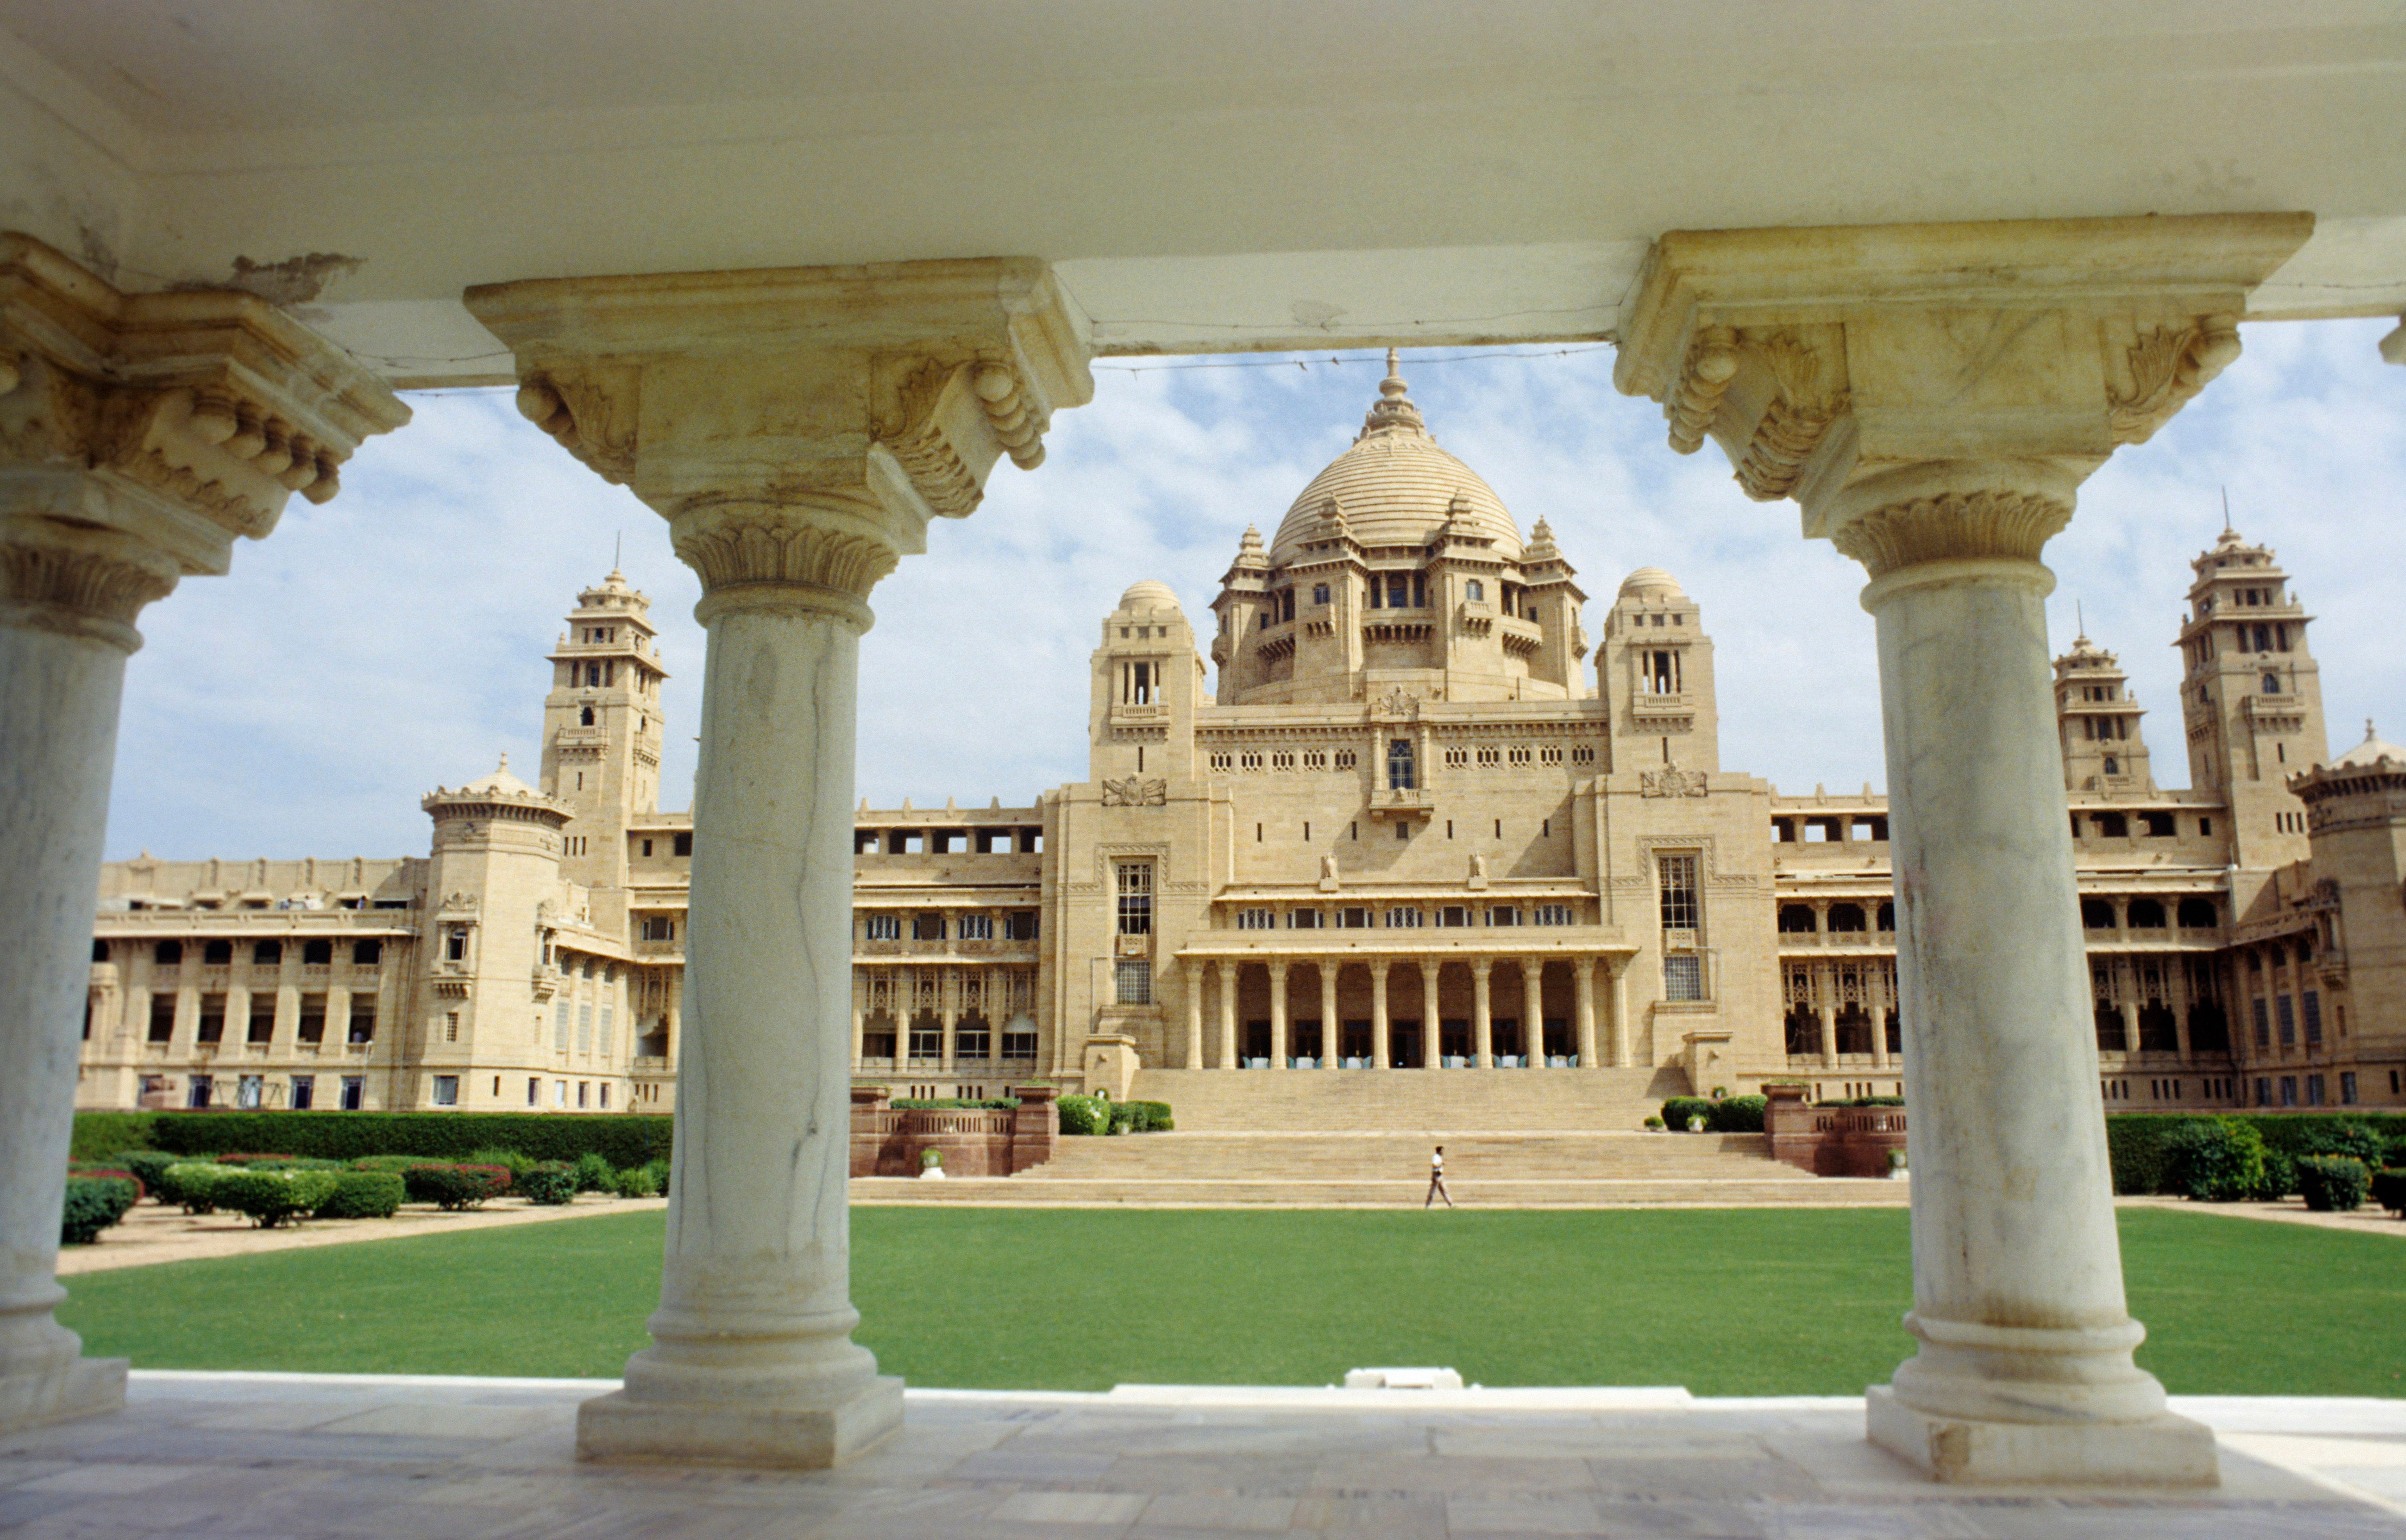 Umaid Bhawan Palace, it is one of the world's largest private residences, Jodhpur, Rajasthan, India. (Photo by: IndiaPictures/UIG via Getty Images)